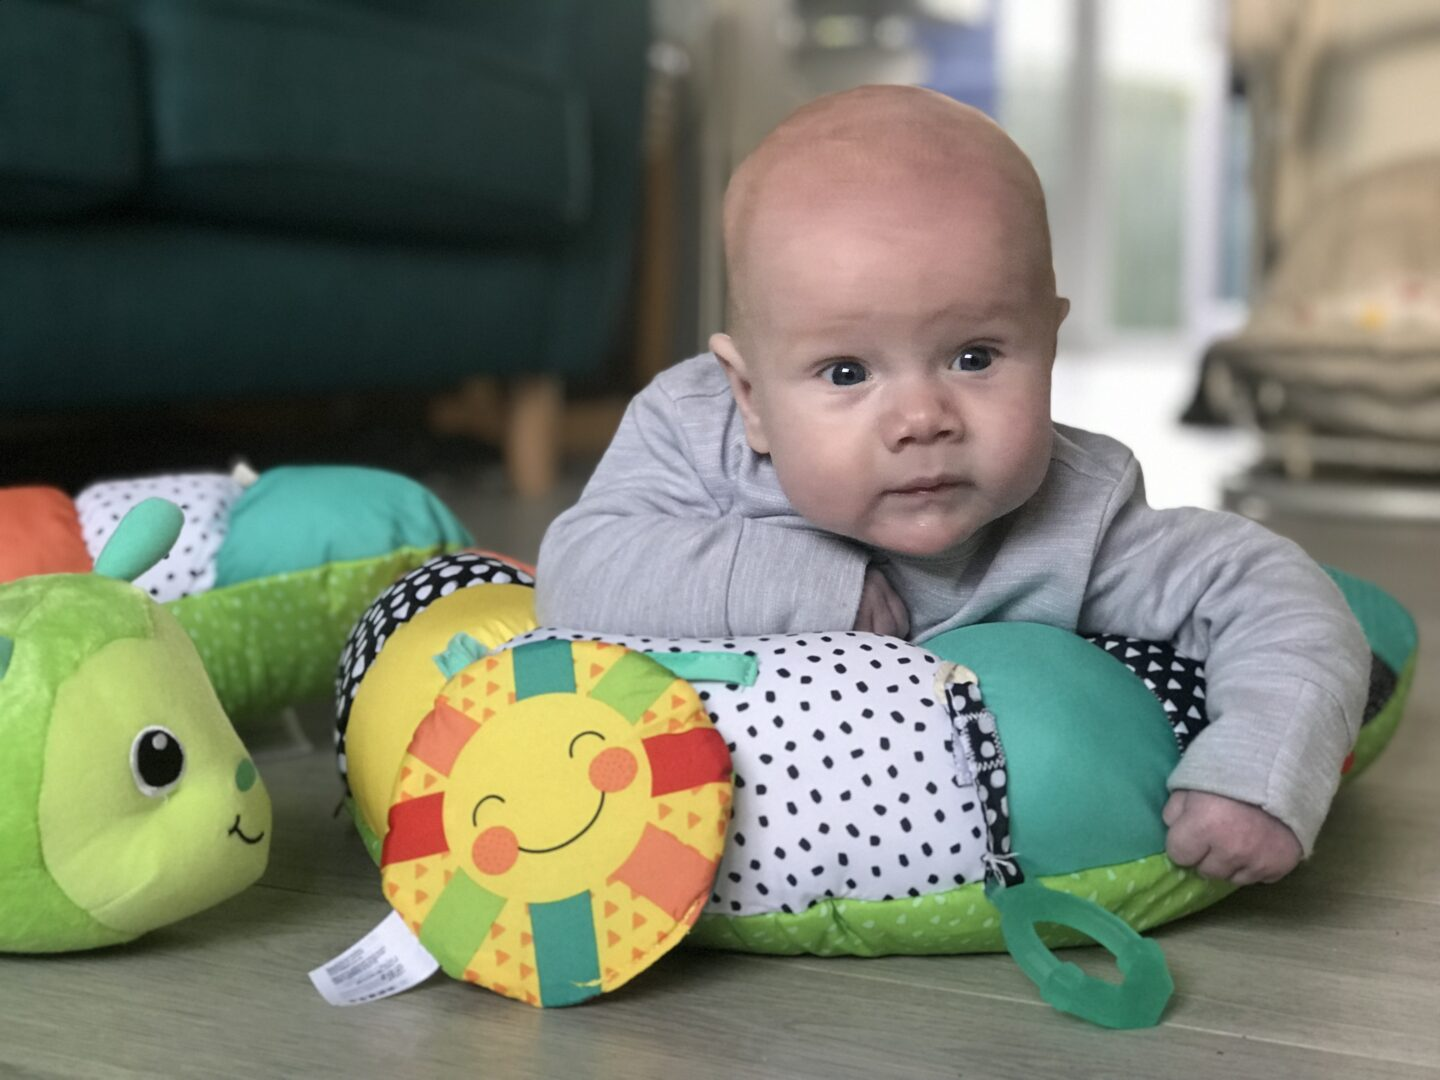 Felix using his Infantino Prop-a-Pillar tummy time support in the lounge